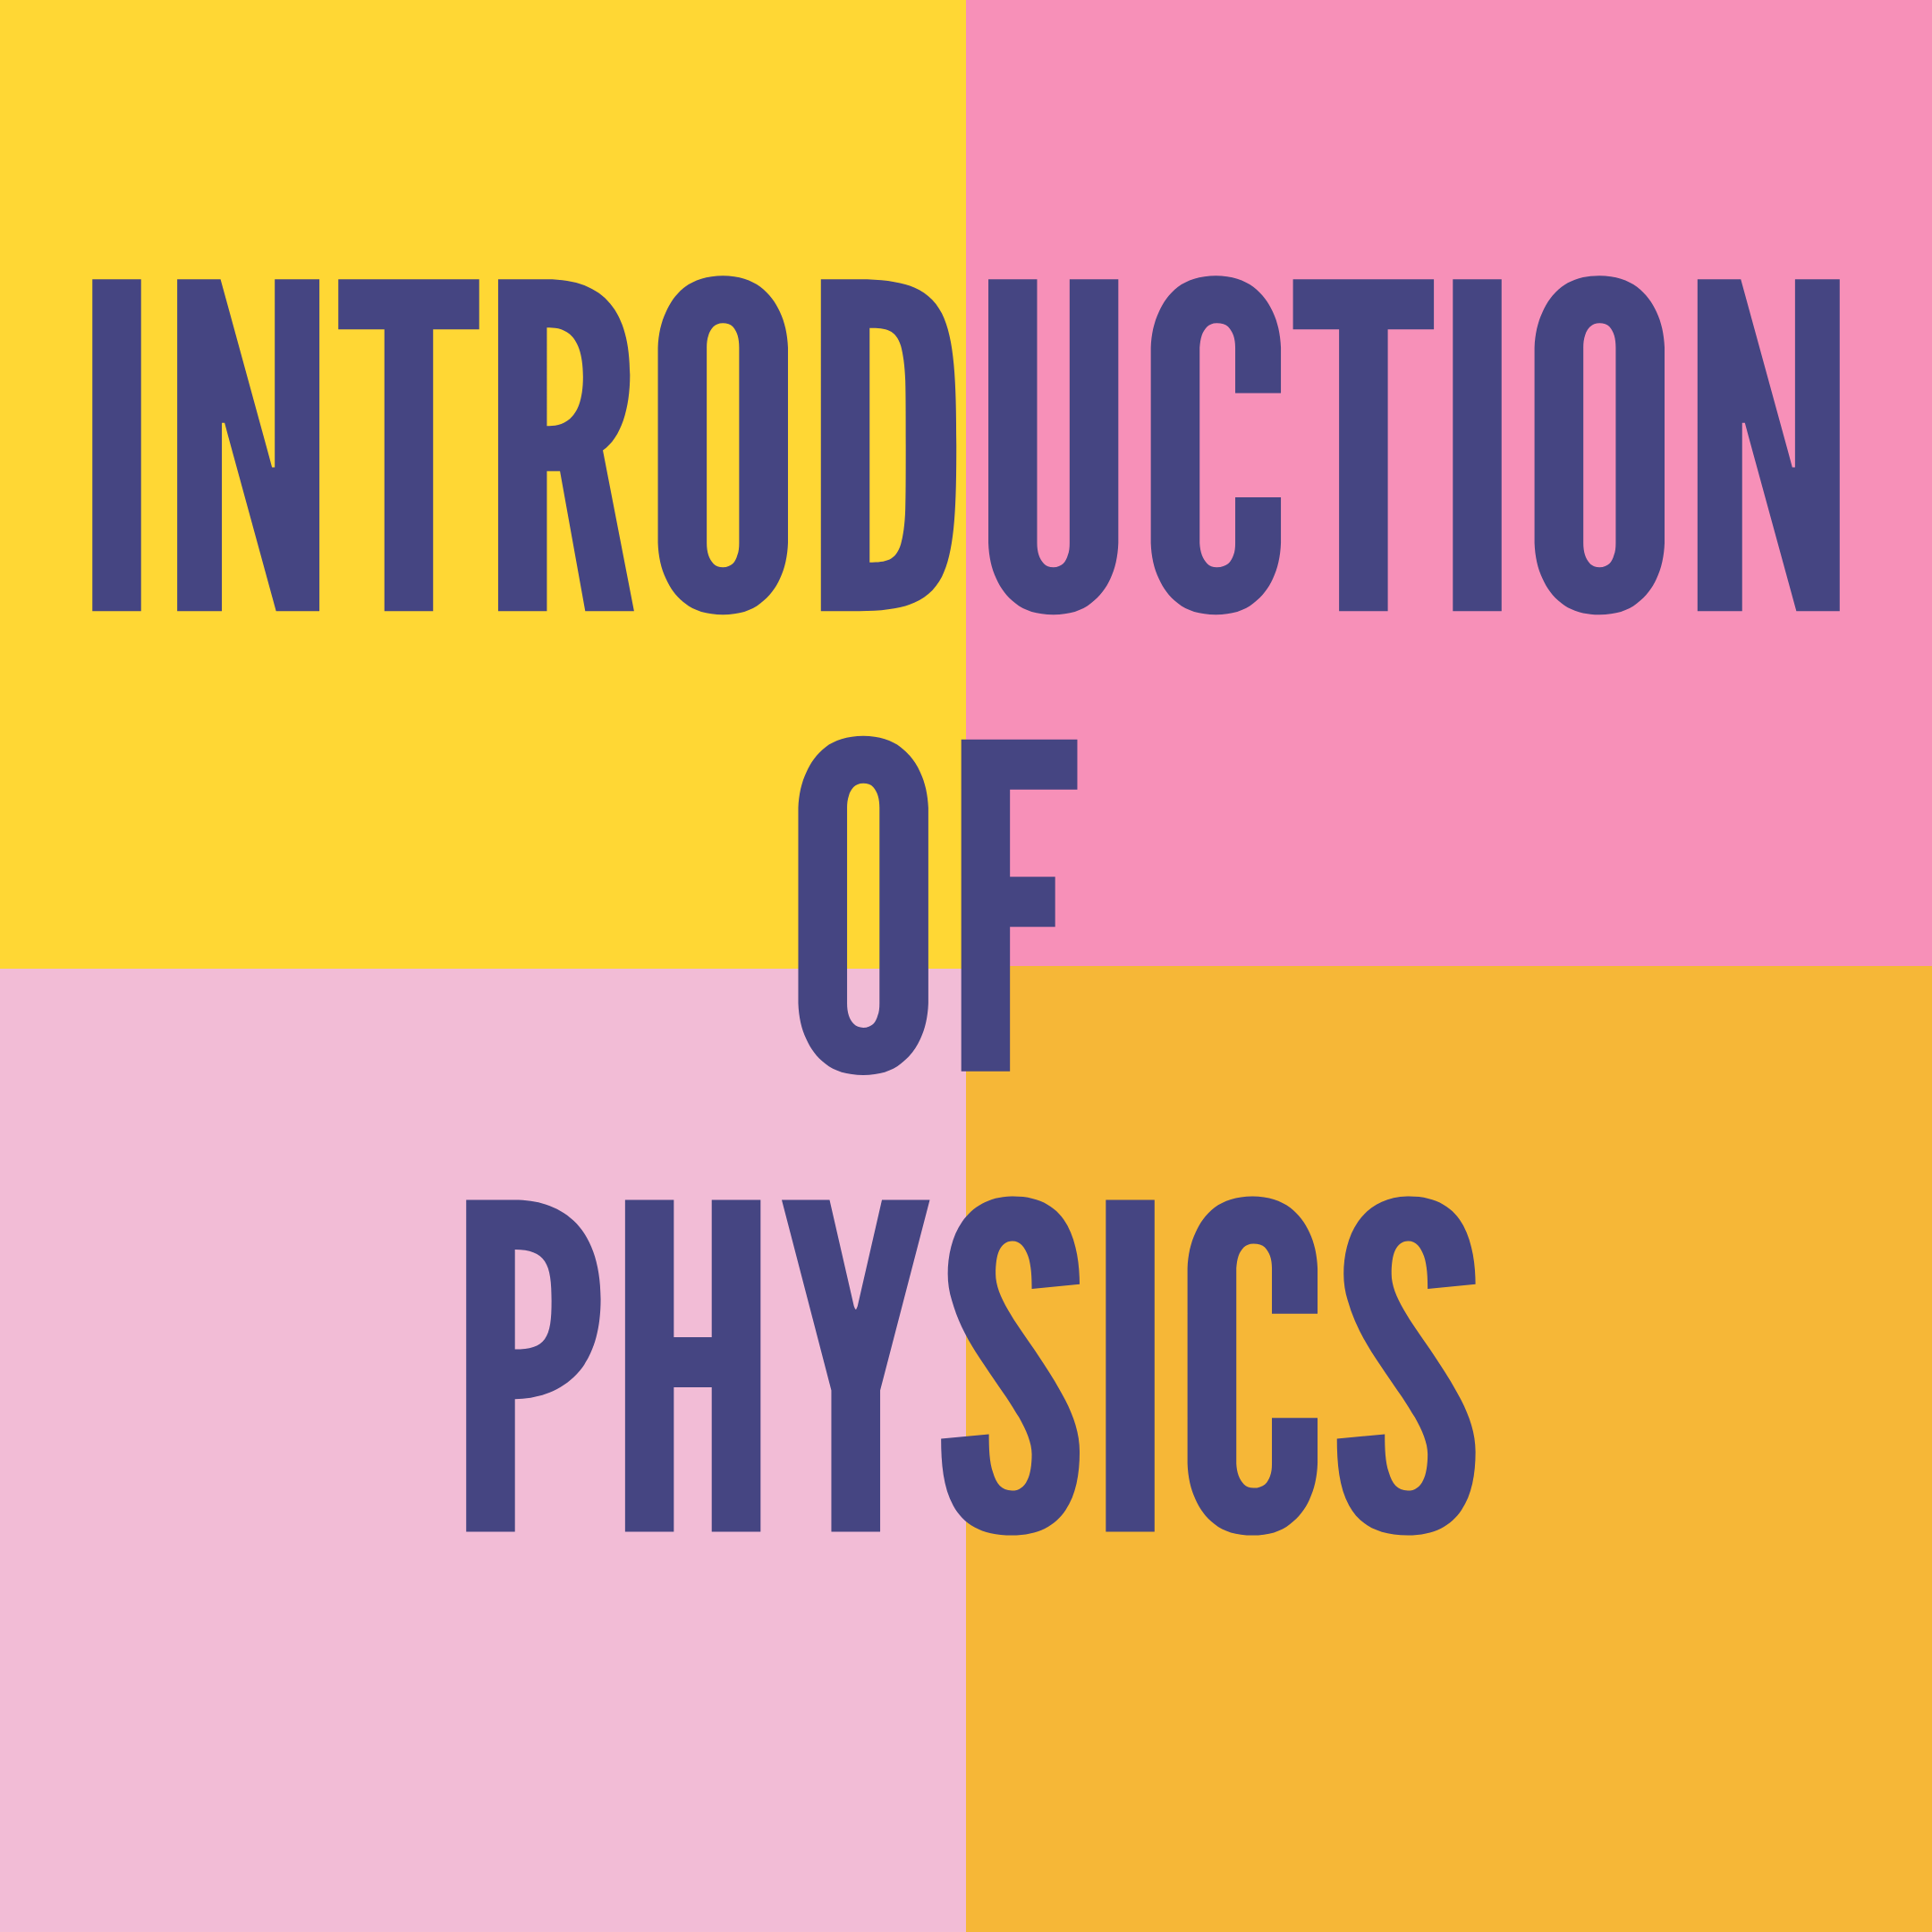 INTRODUCTION CLASS OF PHYSICS